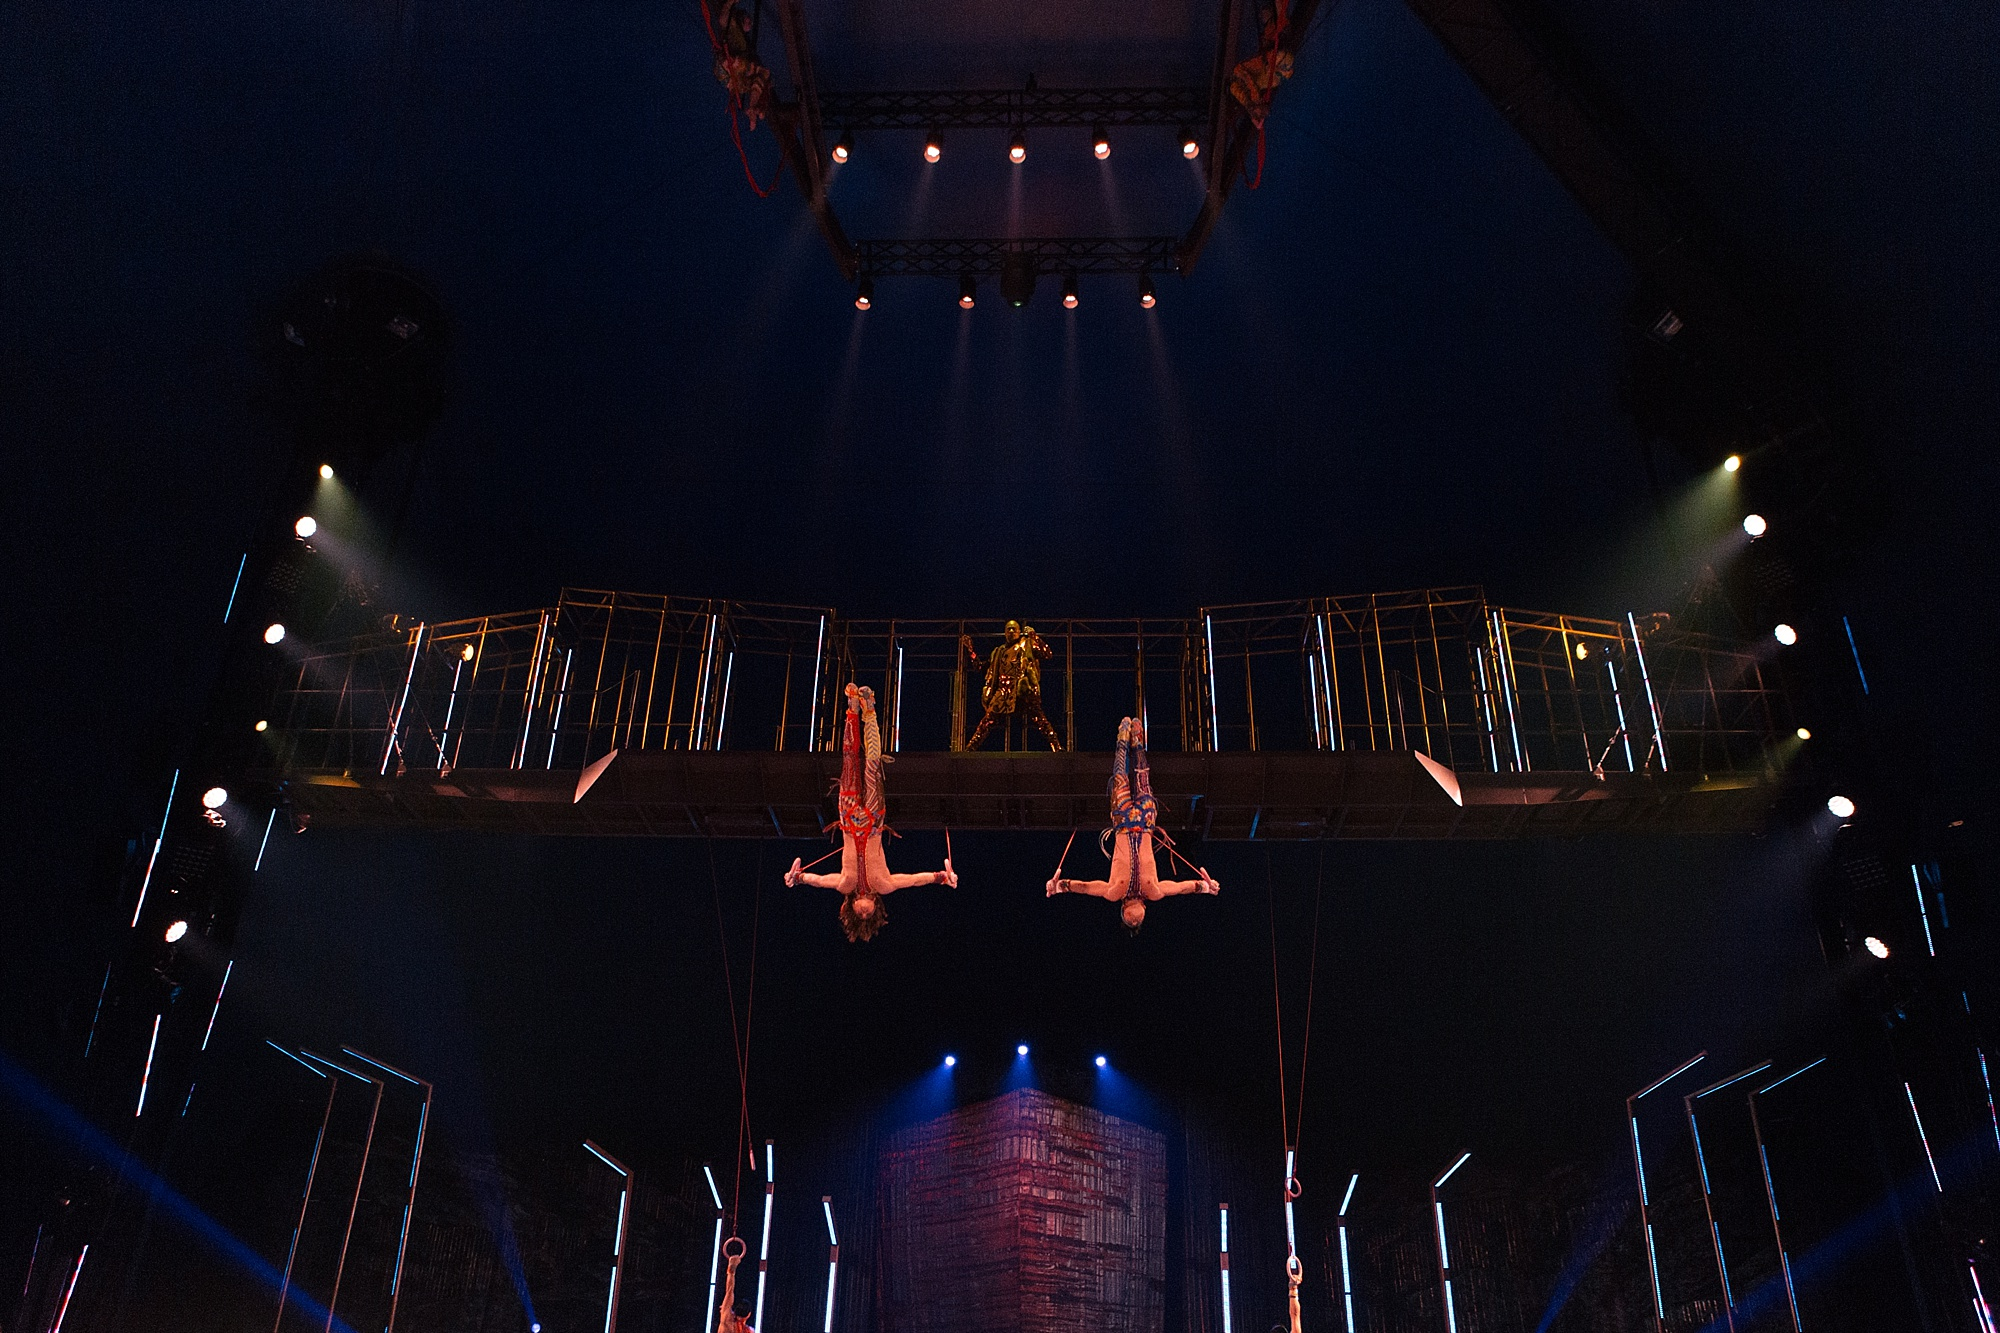 Joe_Mac_Creative_cirque_du_soleil_volta_Greater Philadelphia_Expo_Center_Oaks_PA_Visit_Valley _Forge_0023.jpg